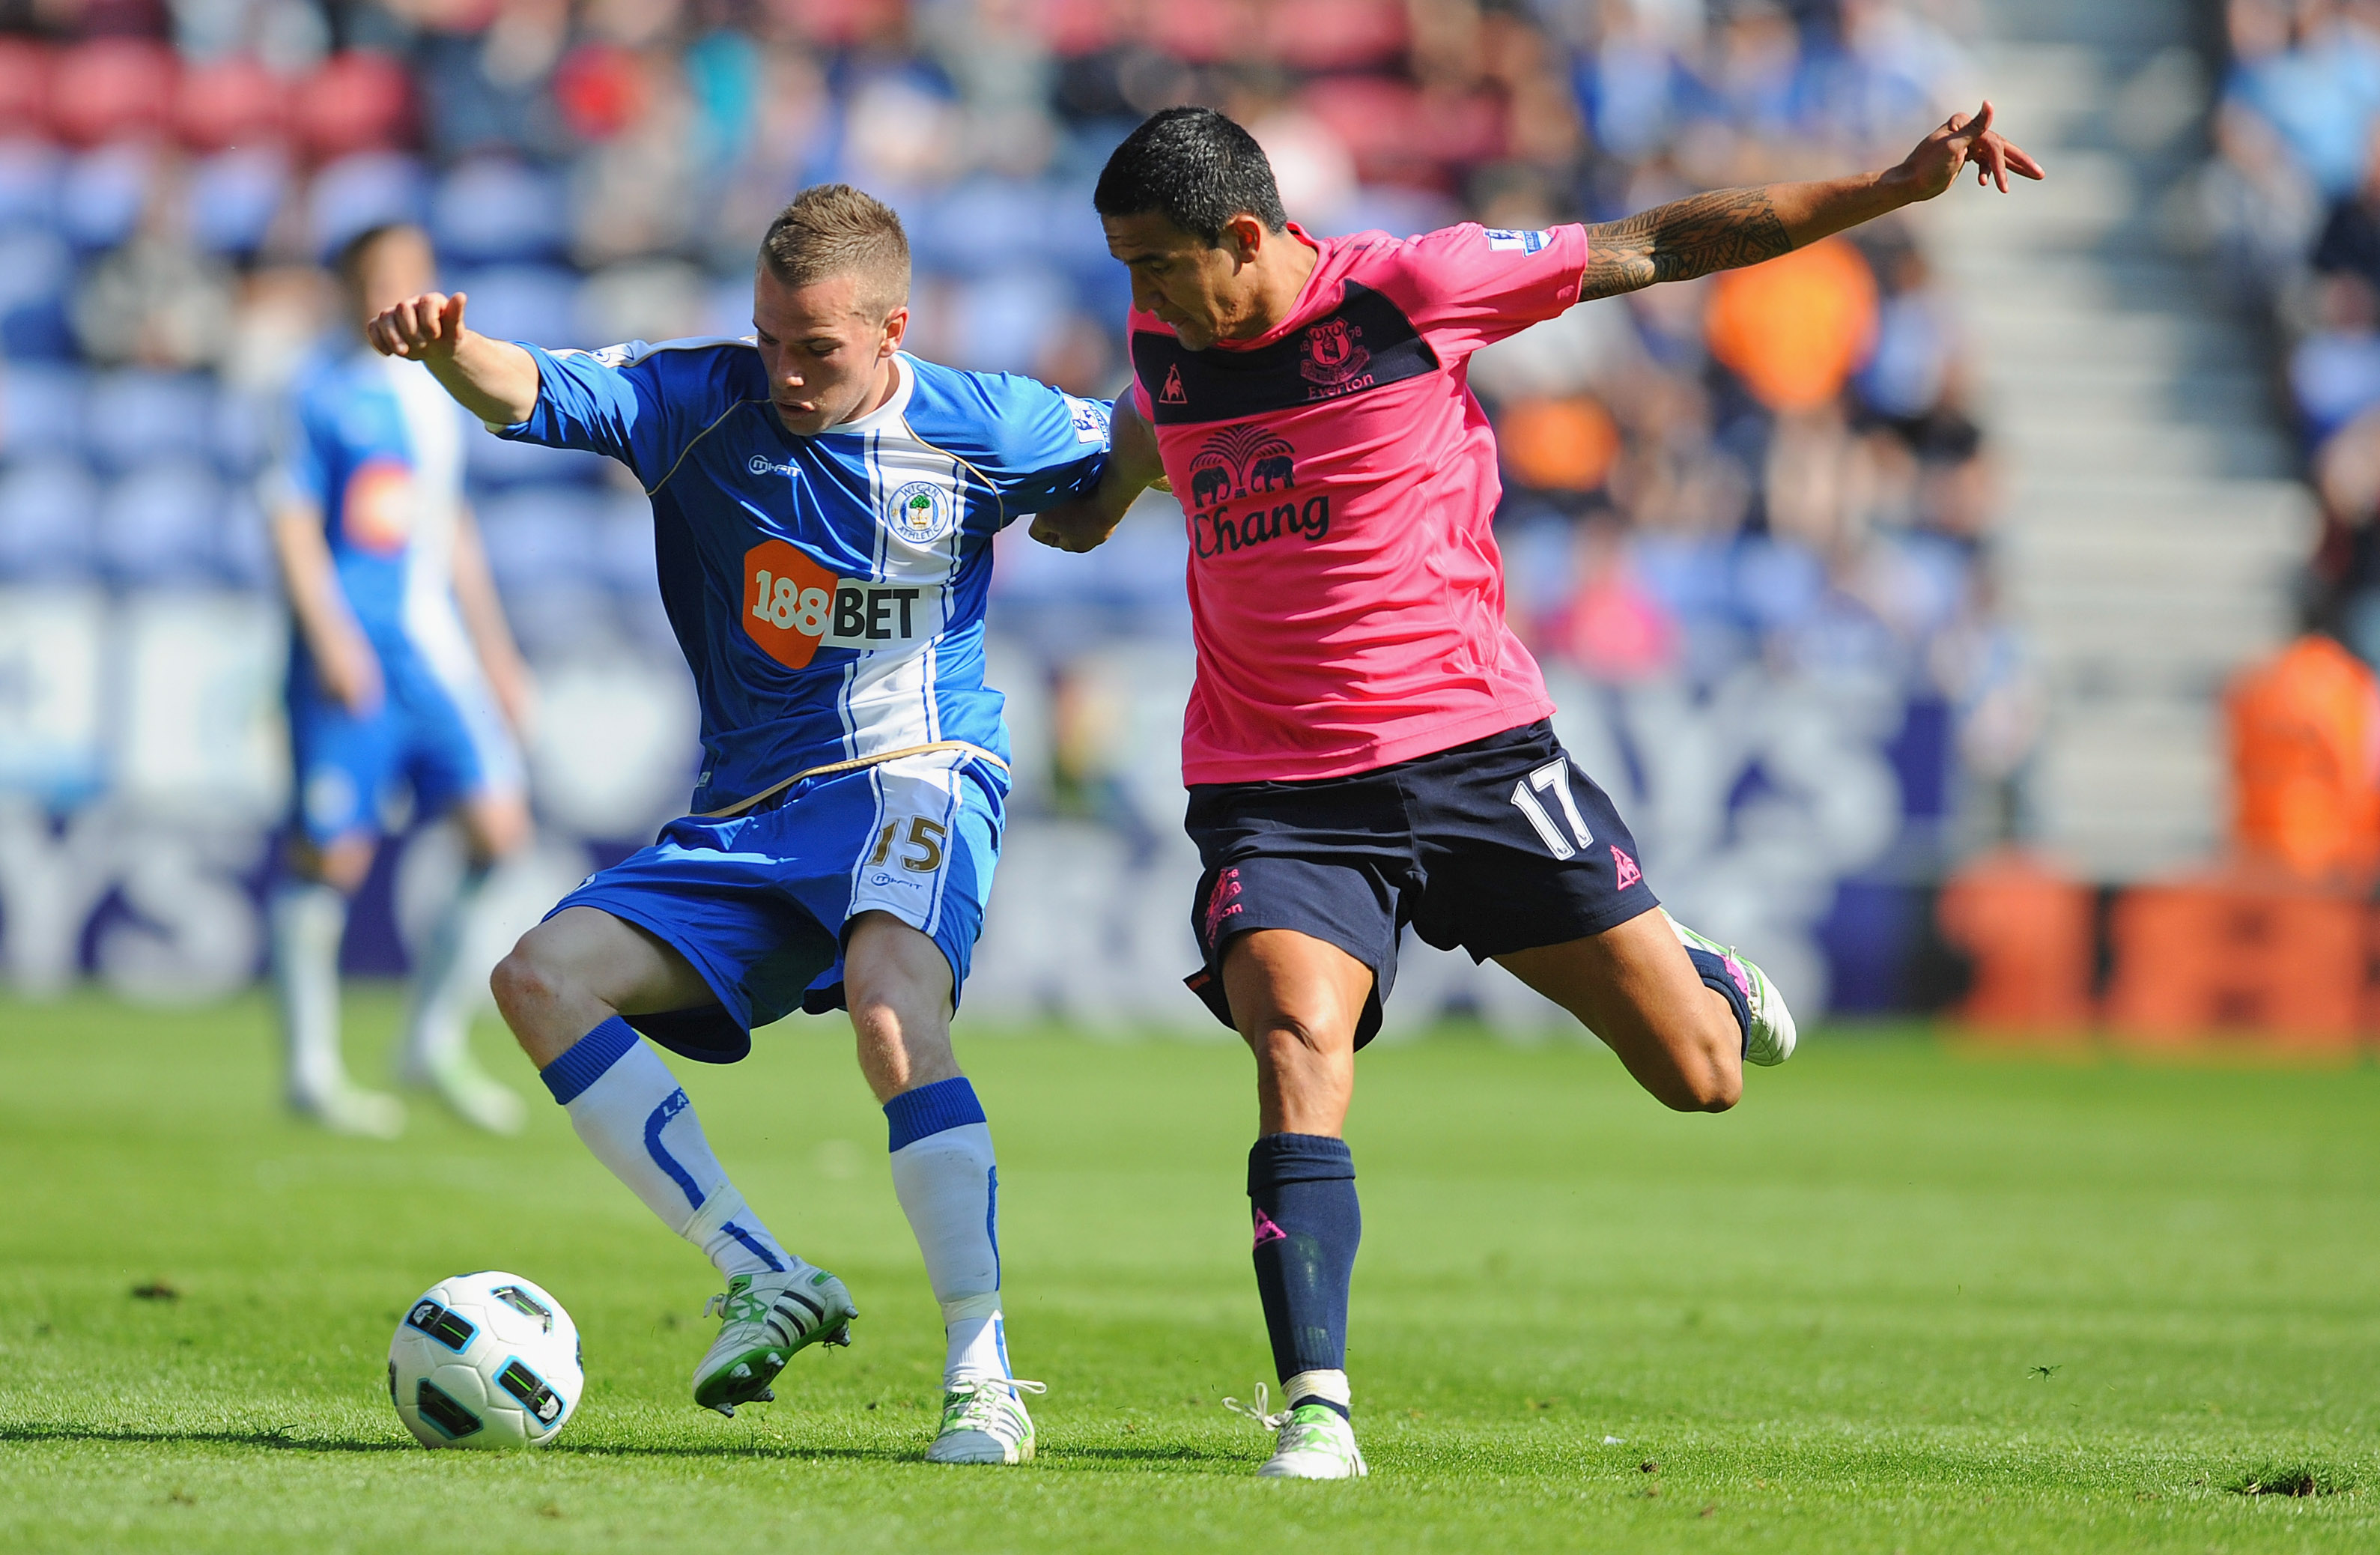 WIGAN, ENGLAND - APRIL 30: Tom Cleverley of Wigan battles Tim Cahill of Everton during the Barclays Premier League match between Wigan and Everton at the DW Stadium on April 30, 2011 in Wigan, England.  (Photo by Michael Regan/Getty Images)